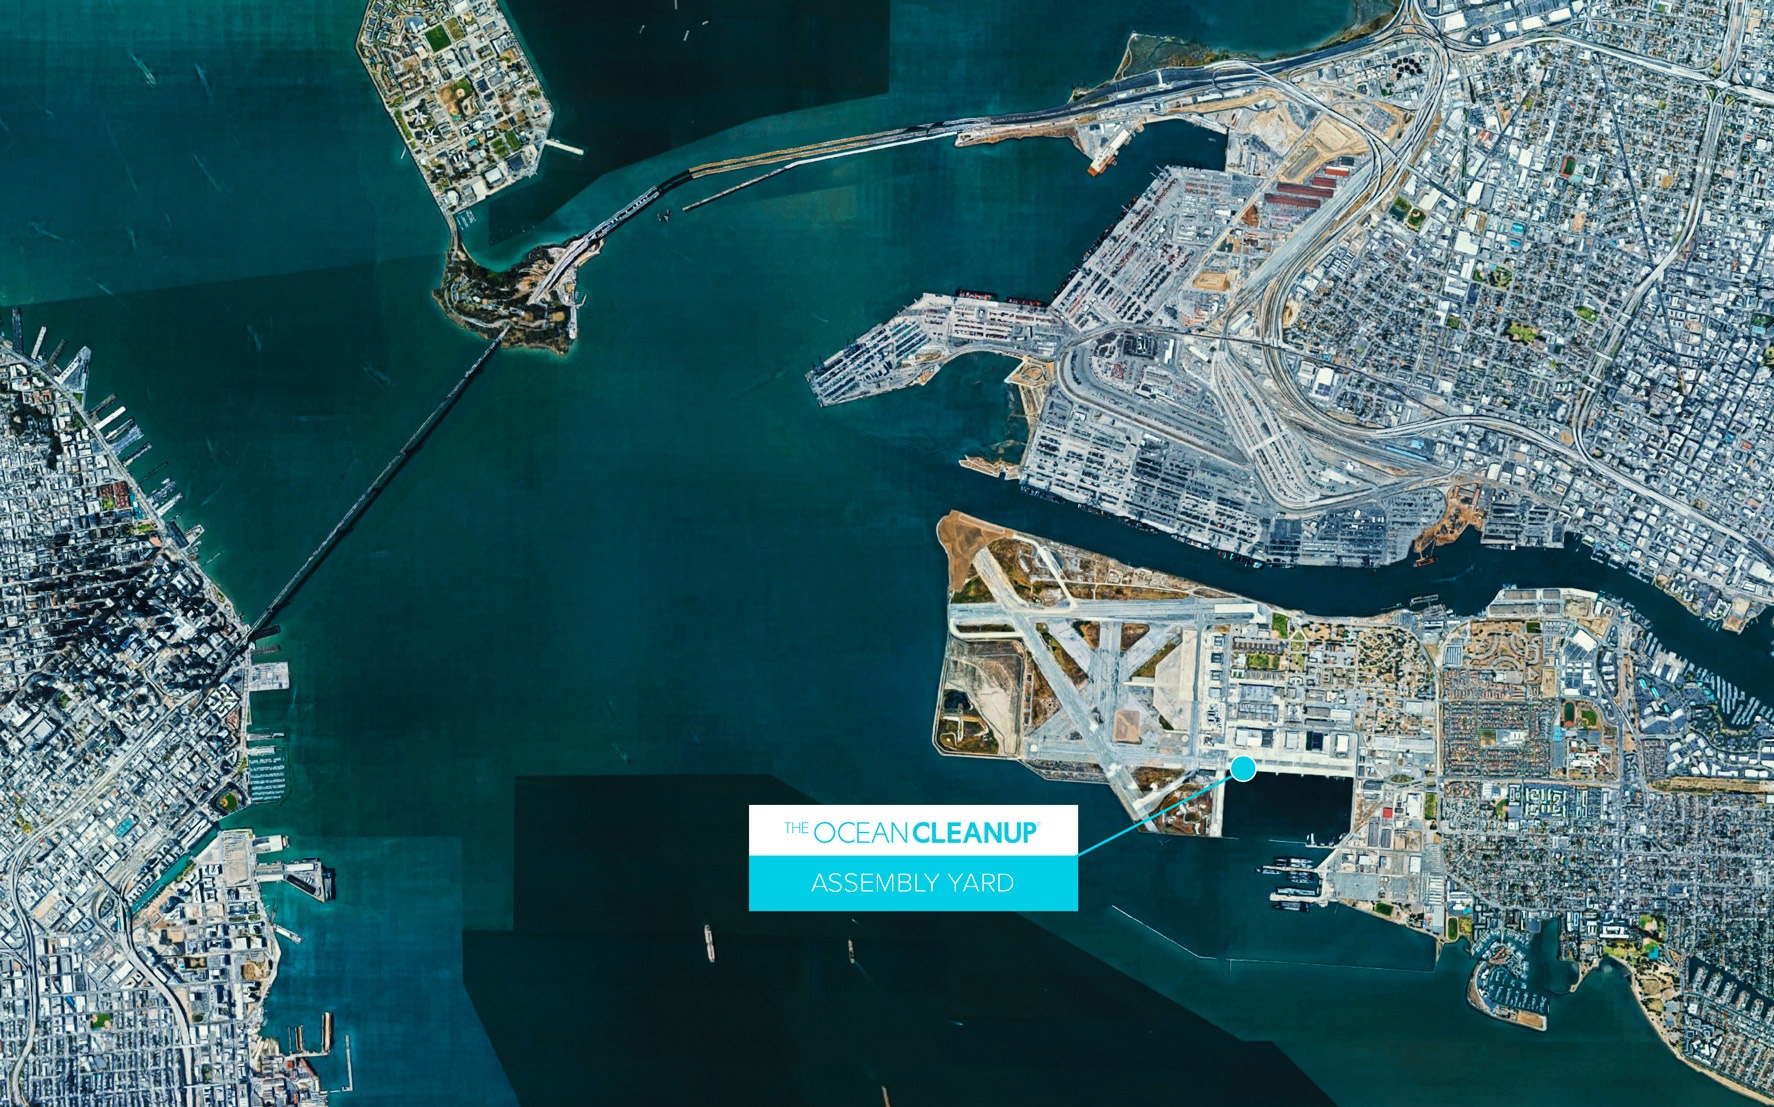 Location of The Ocean Cleanup Assembly Yard in relation to Oakland (top right) and San Francisco (left)